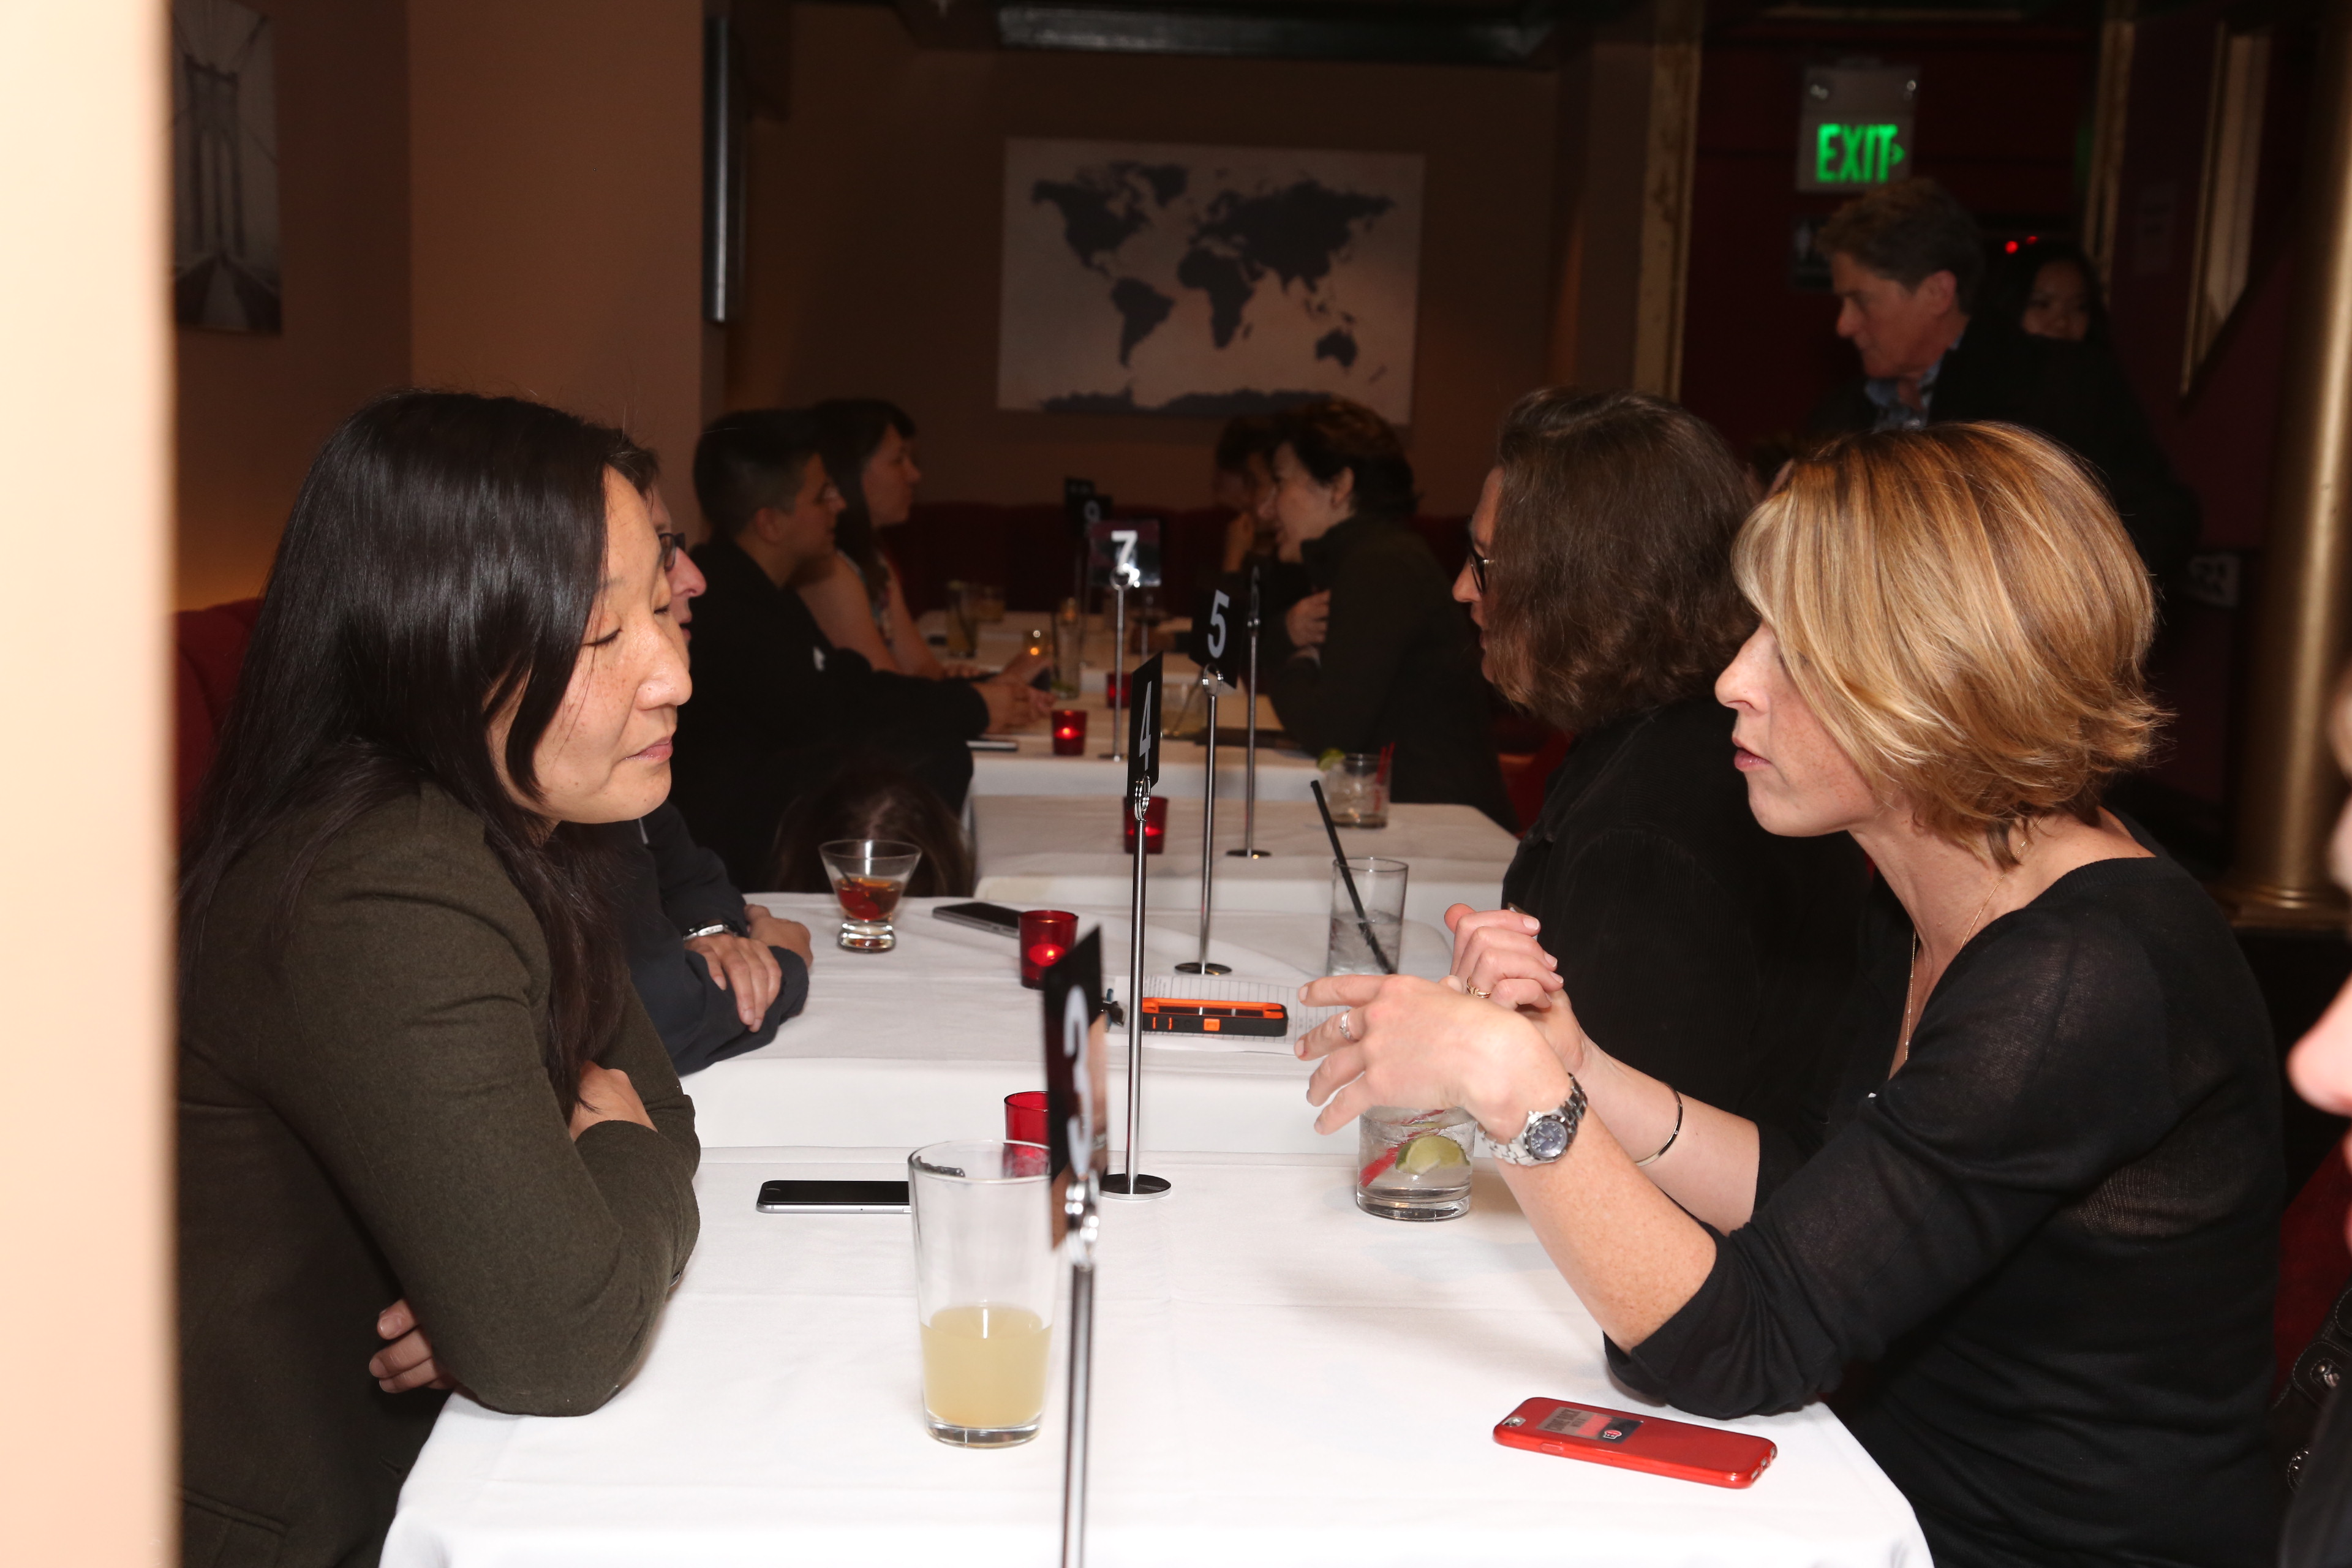 Speed dating events bay area